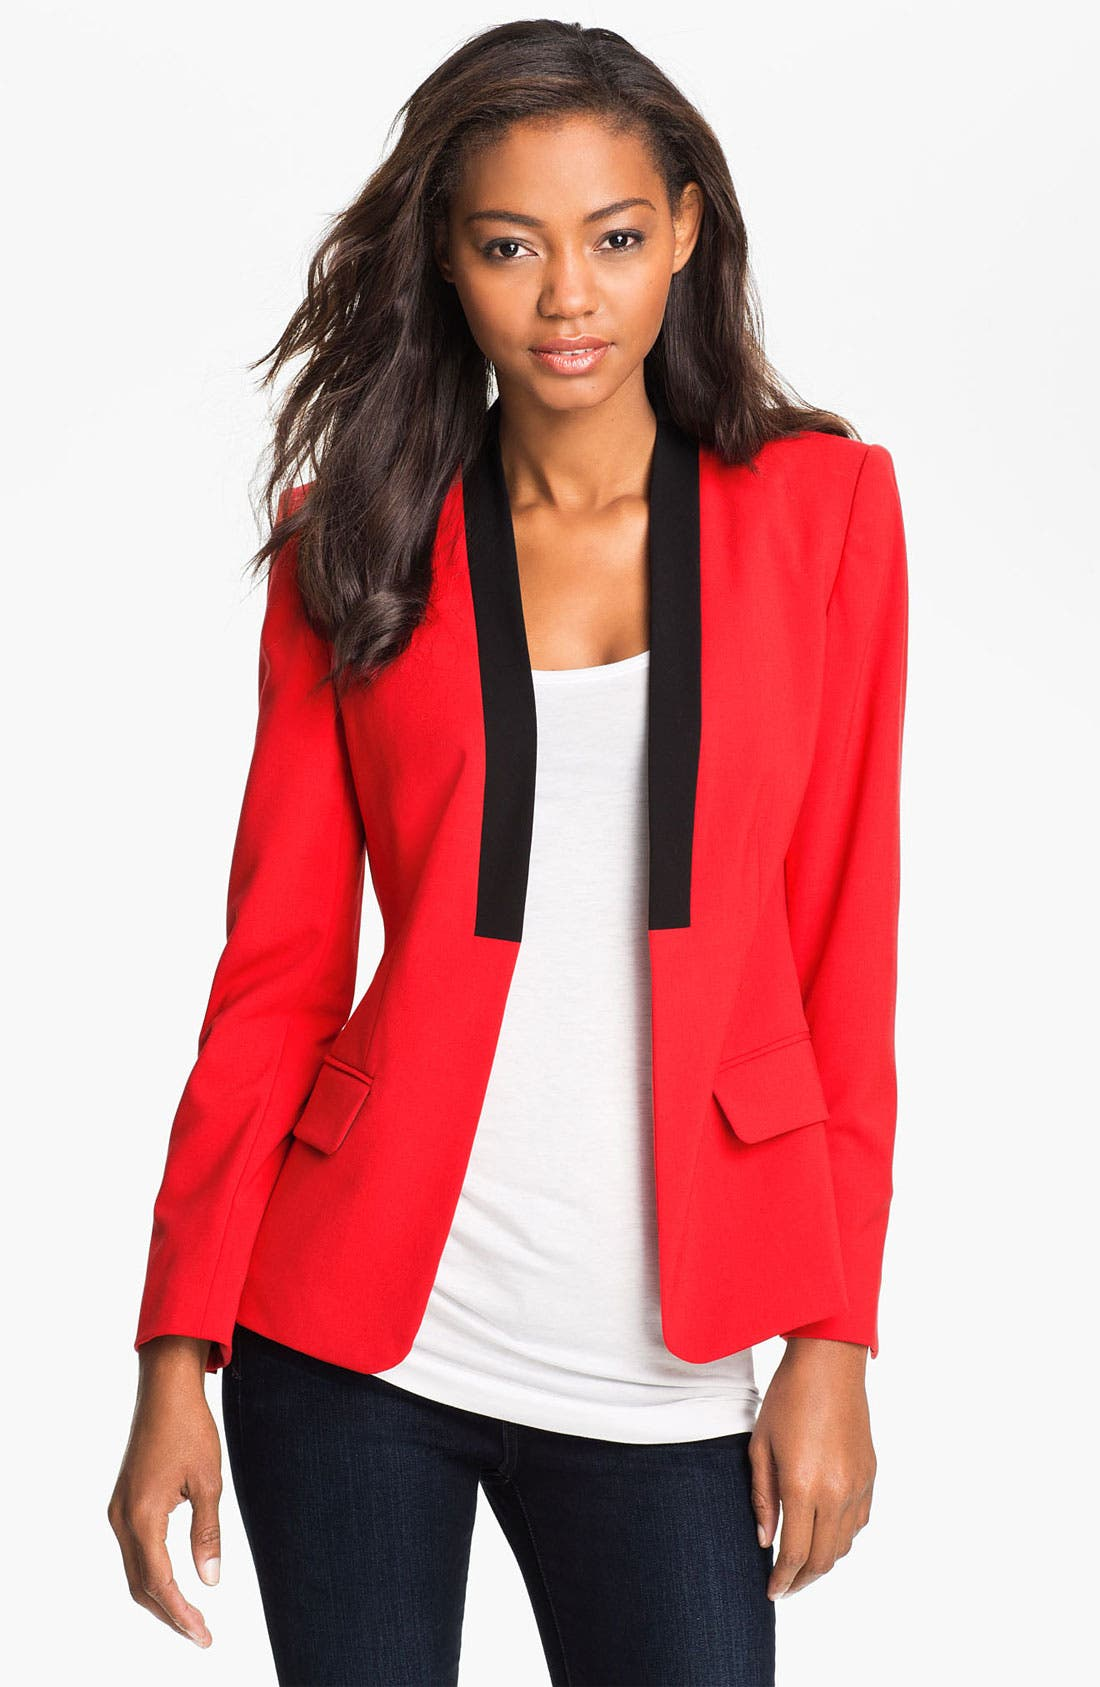 Alternate Image 1 Selected - Vince Camuto Contrast Trim Blazer